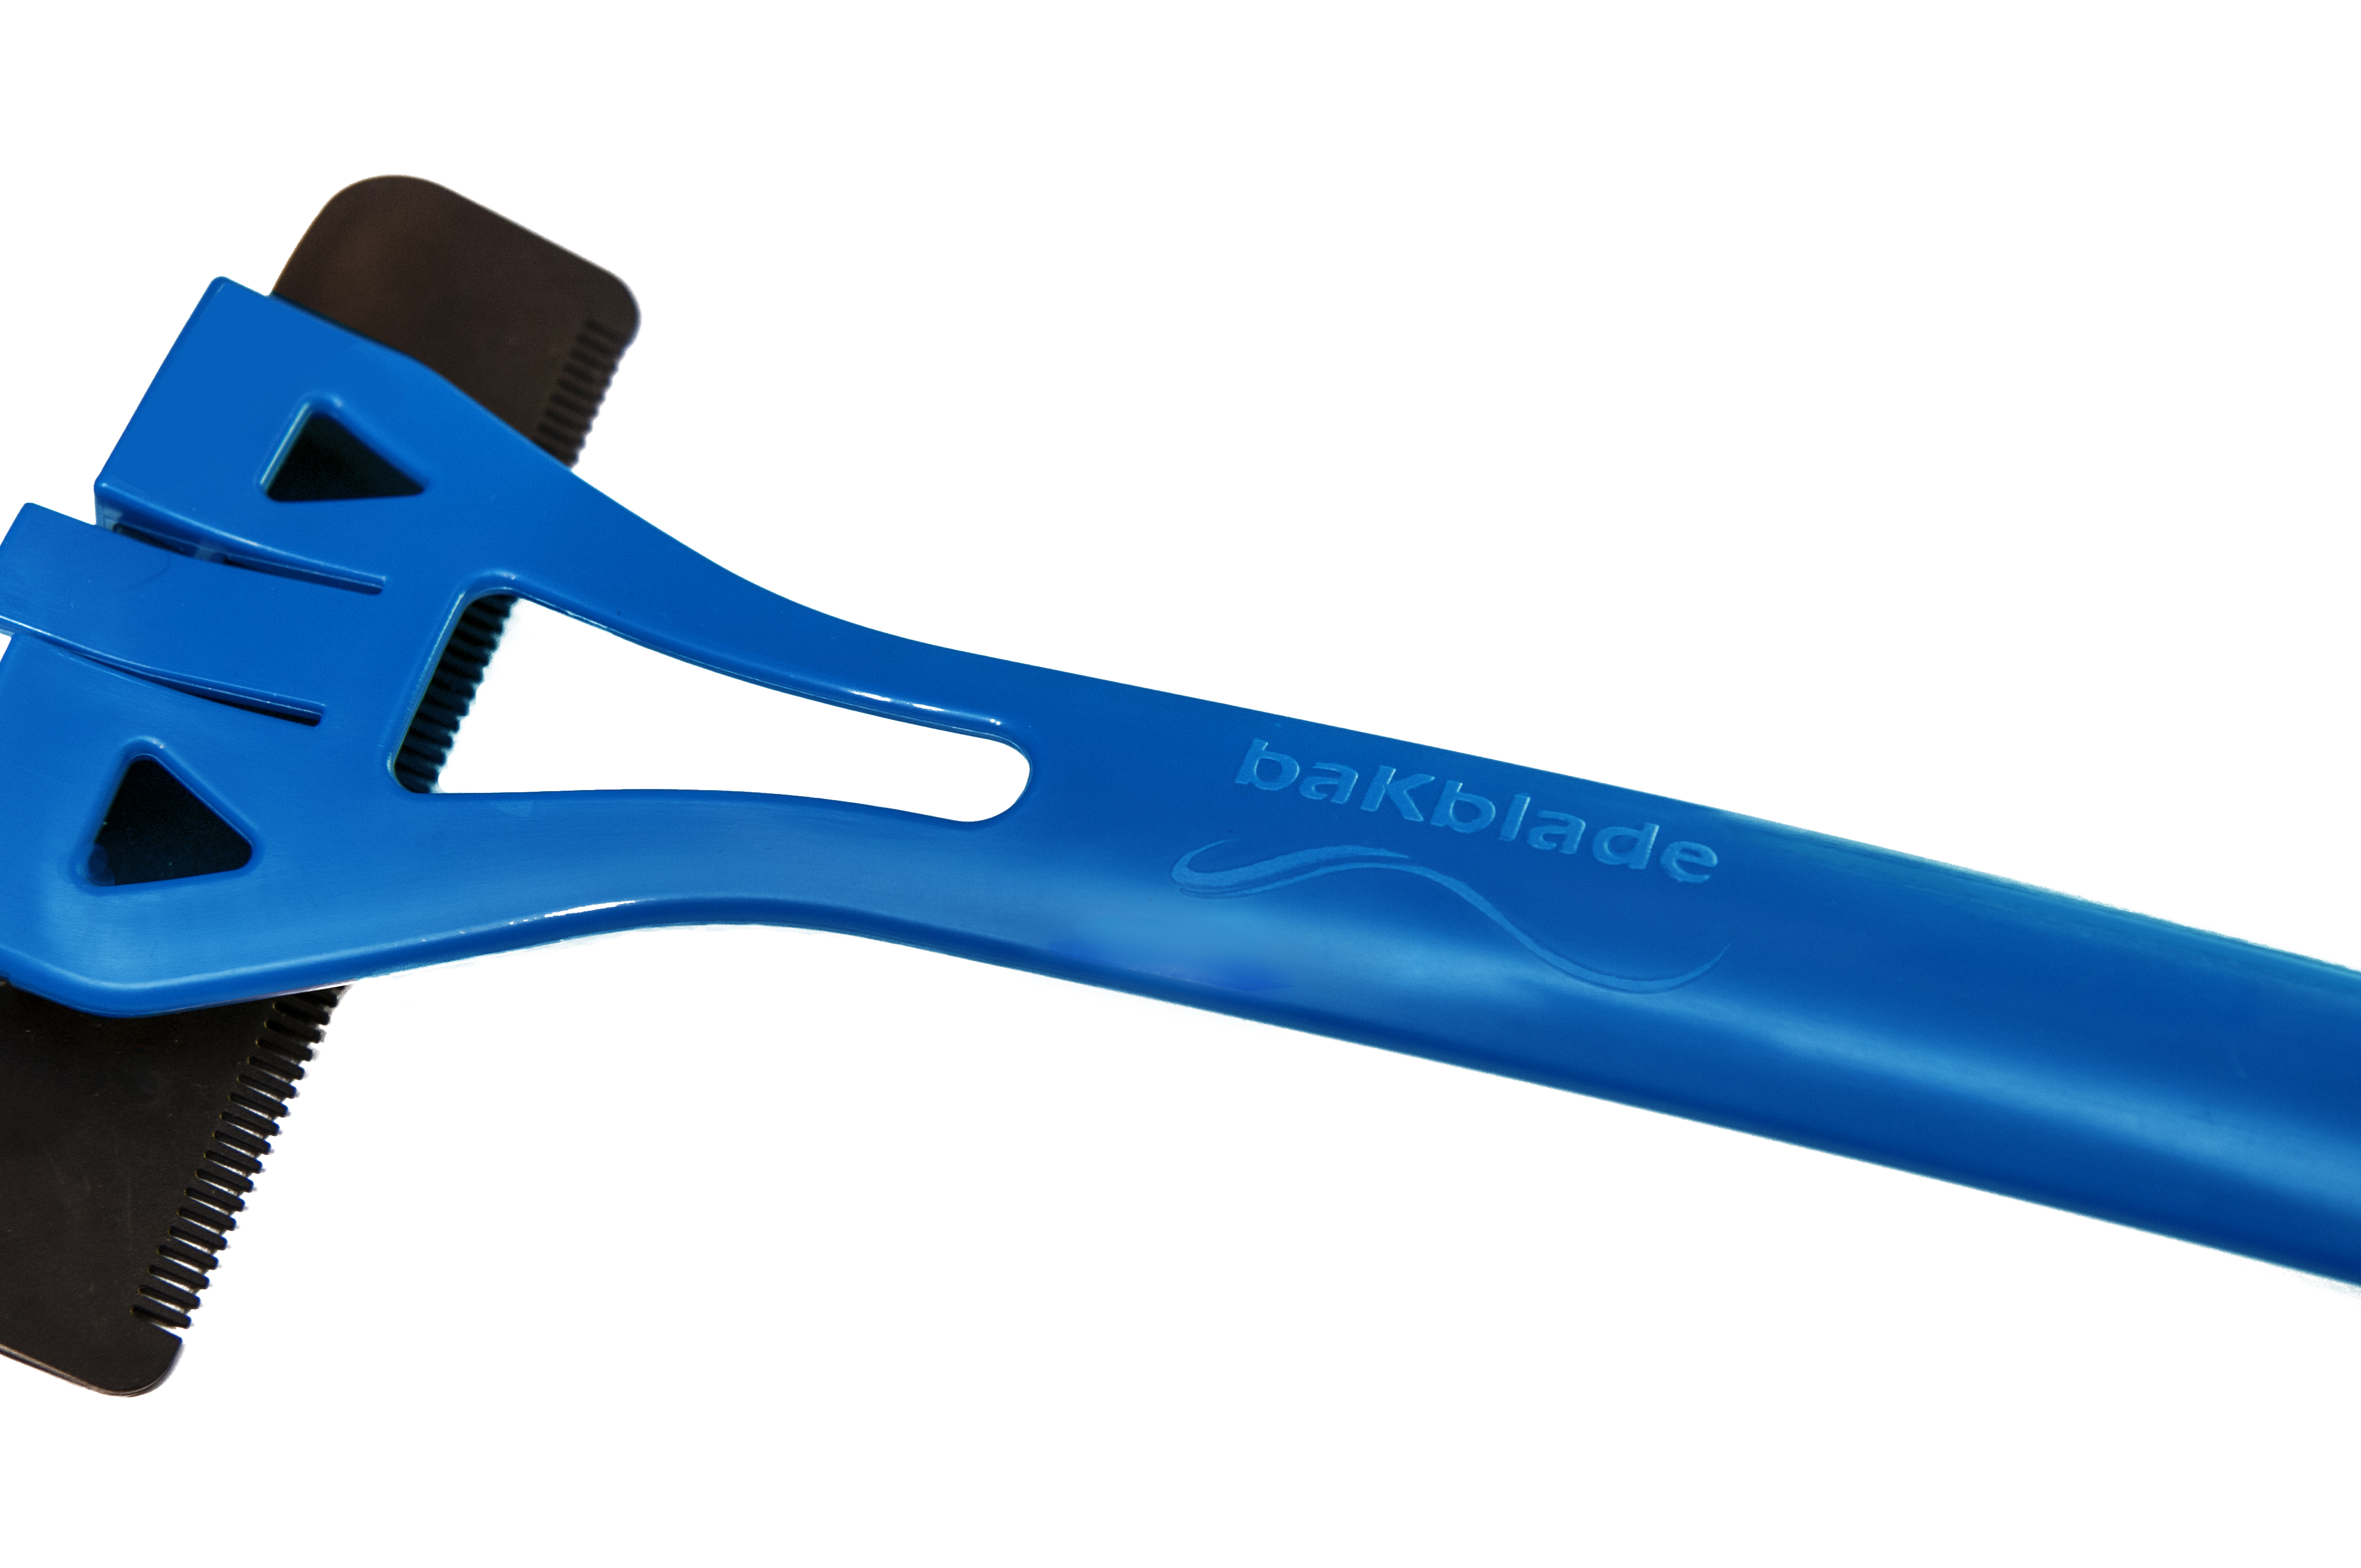 Get a close shave with bakblade shaving healthy for men bakblade image 2 solutioingenieria Images